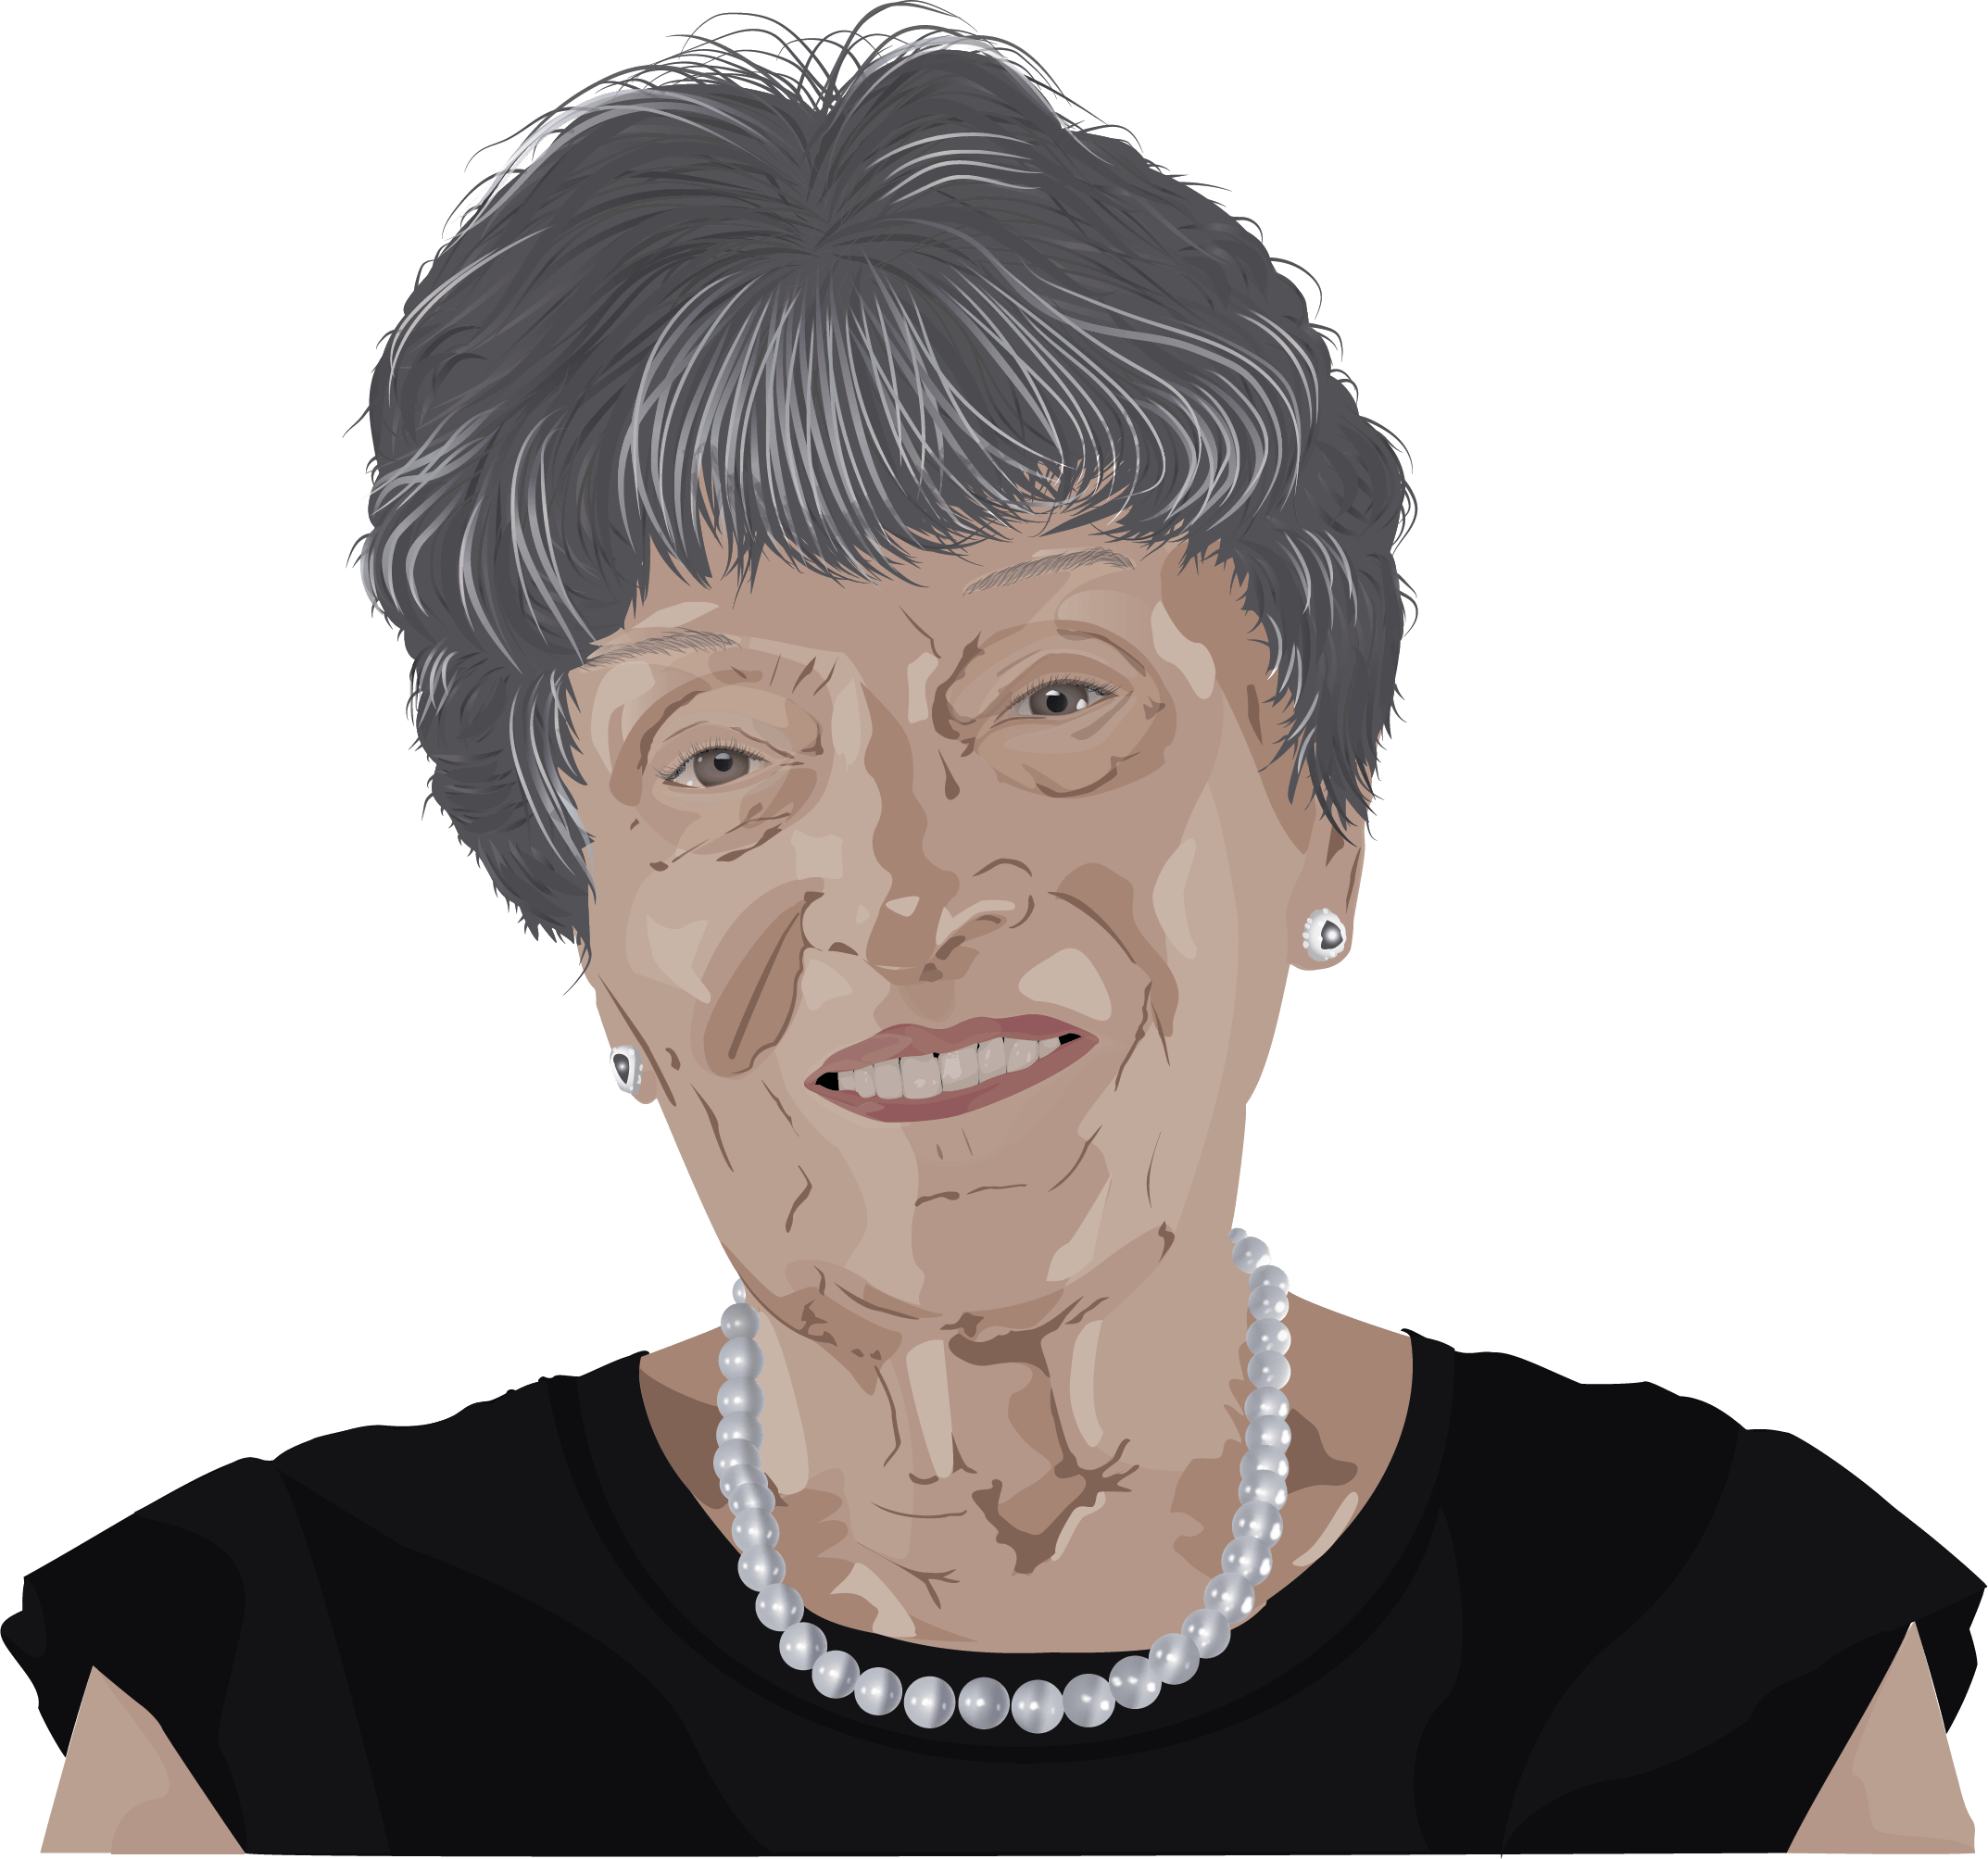 vectorization of an older woman